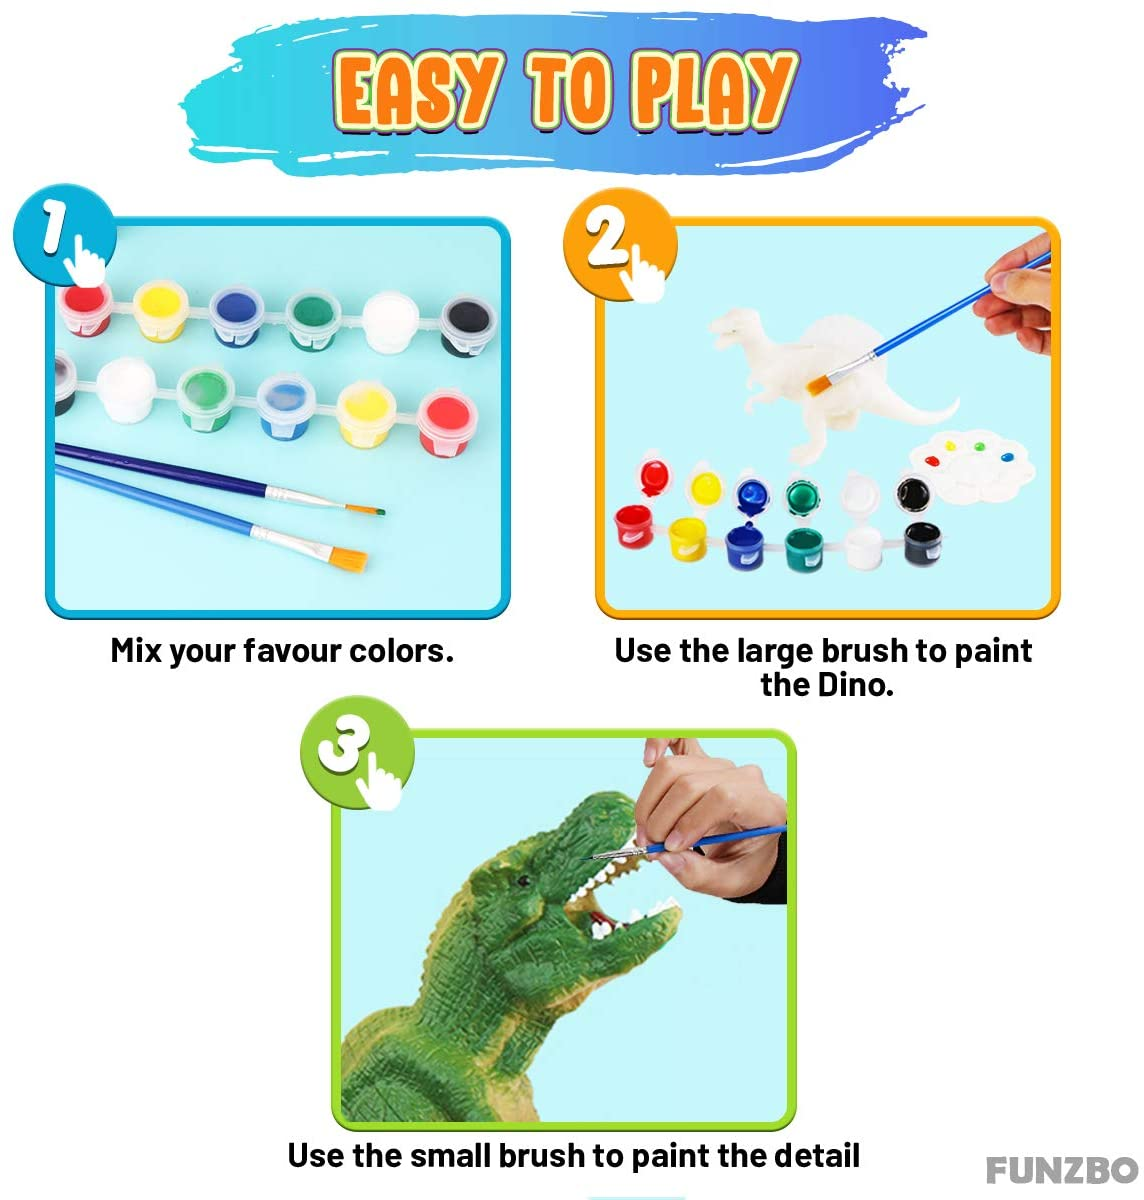 40pcs Dinosaurs Painting Kit Art Crafts Set for Kids,3D Dinosaur Toys Drawing Projects for Children Boys Girls Age 4 5 6 7 8 Years Old,with Triceratops T rex Set